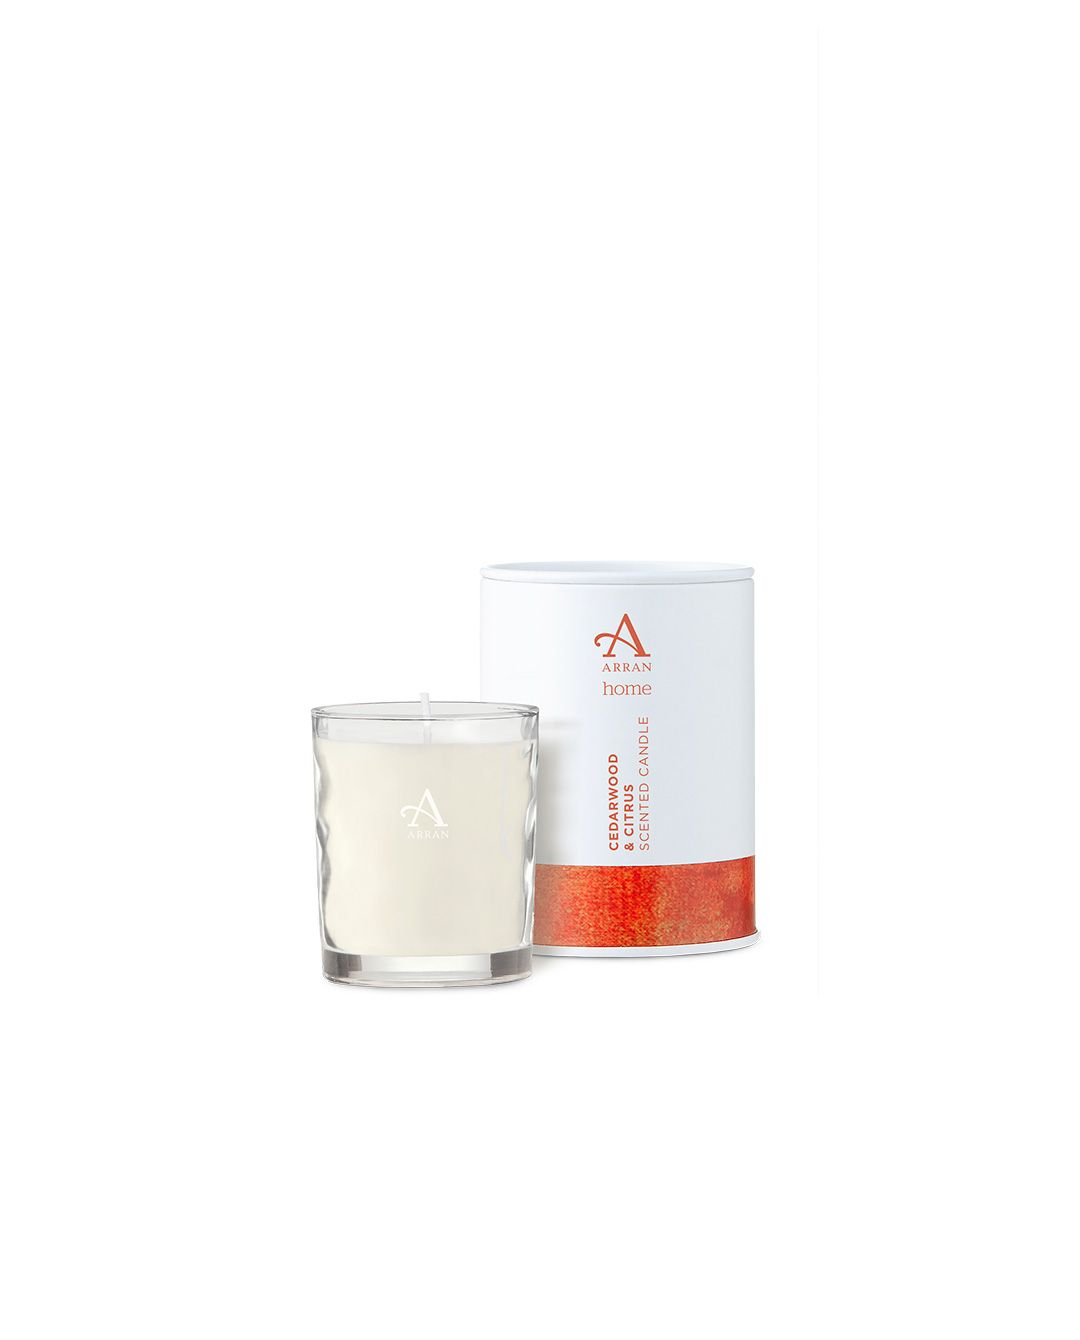 Arran Aromatics Cedarwood & Citrus Candle in Tin 8cl